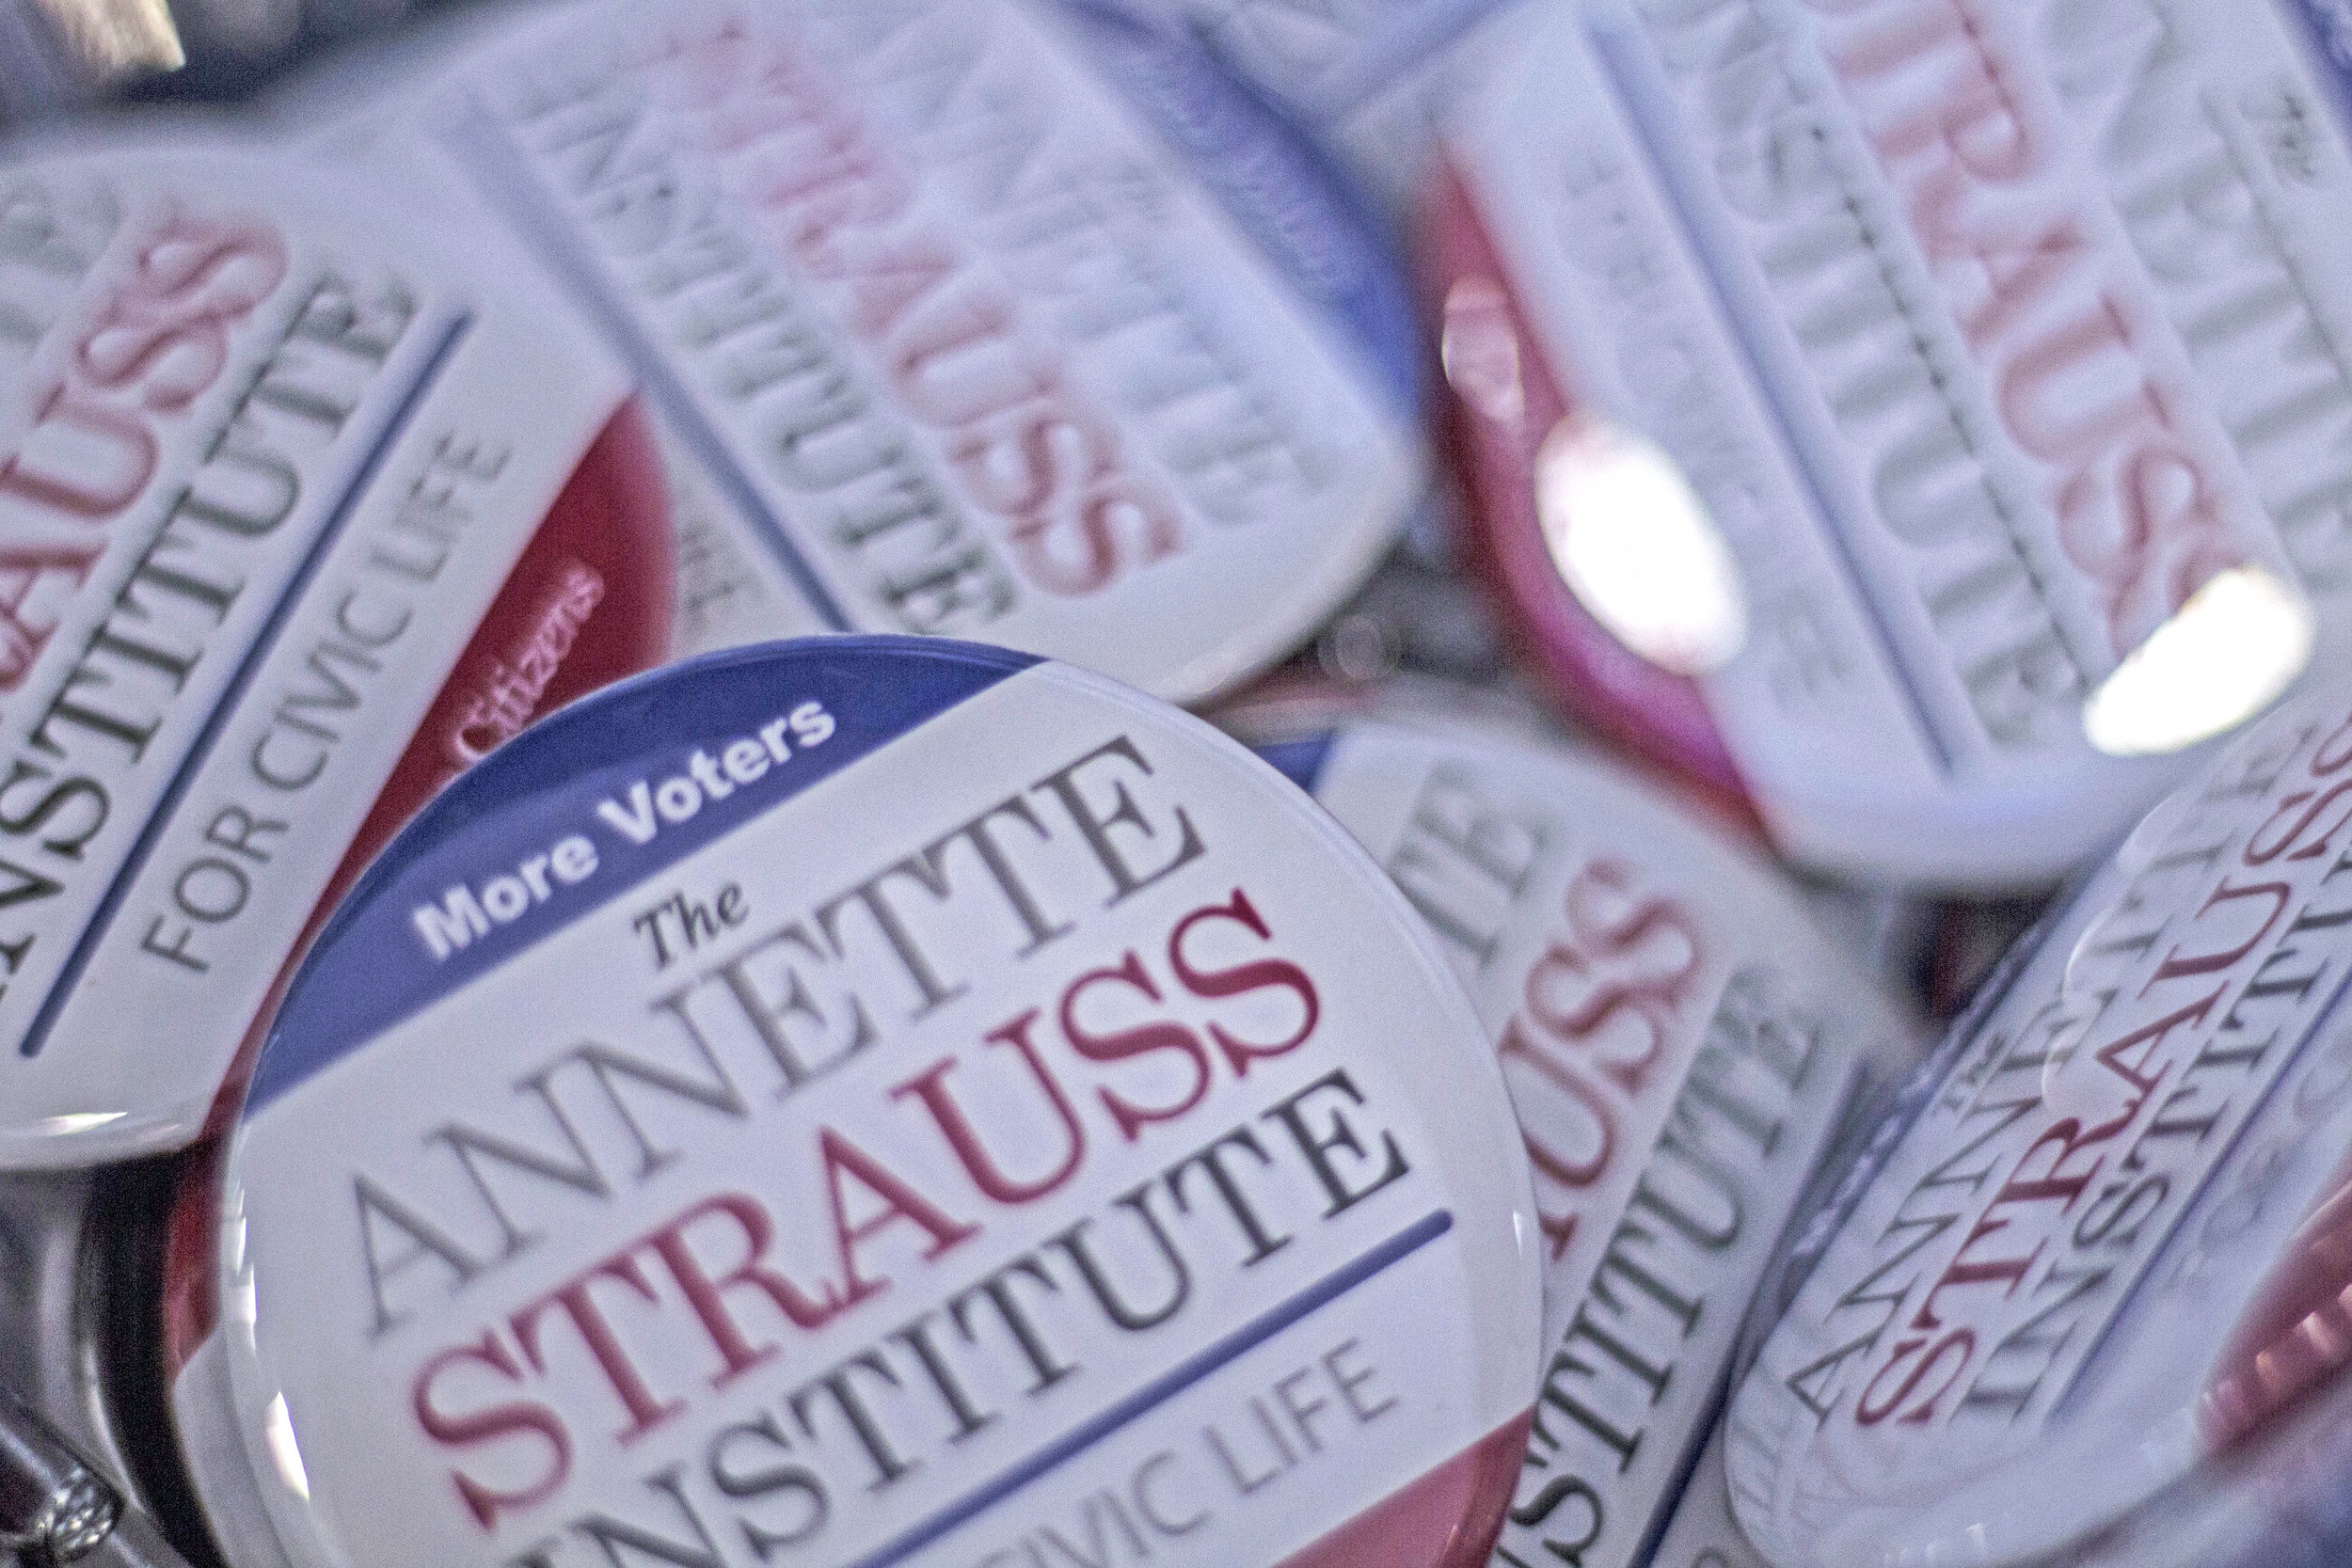 The Annette Strauss Institute for Civic Life was founded in 2000 to inform voters and engage active citizens.